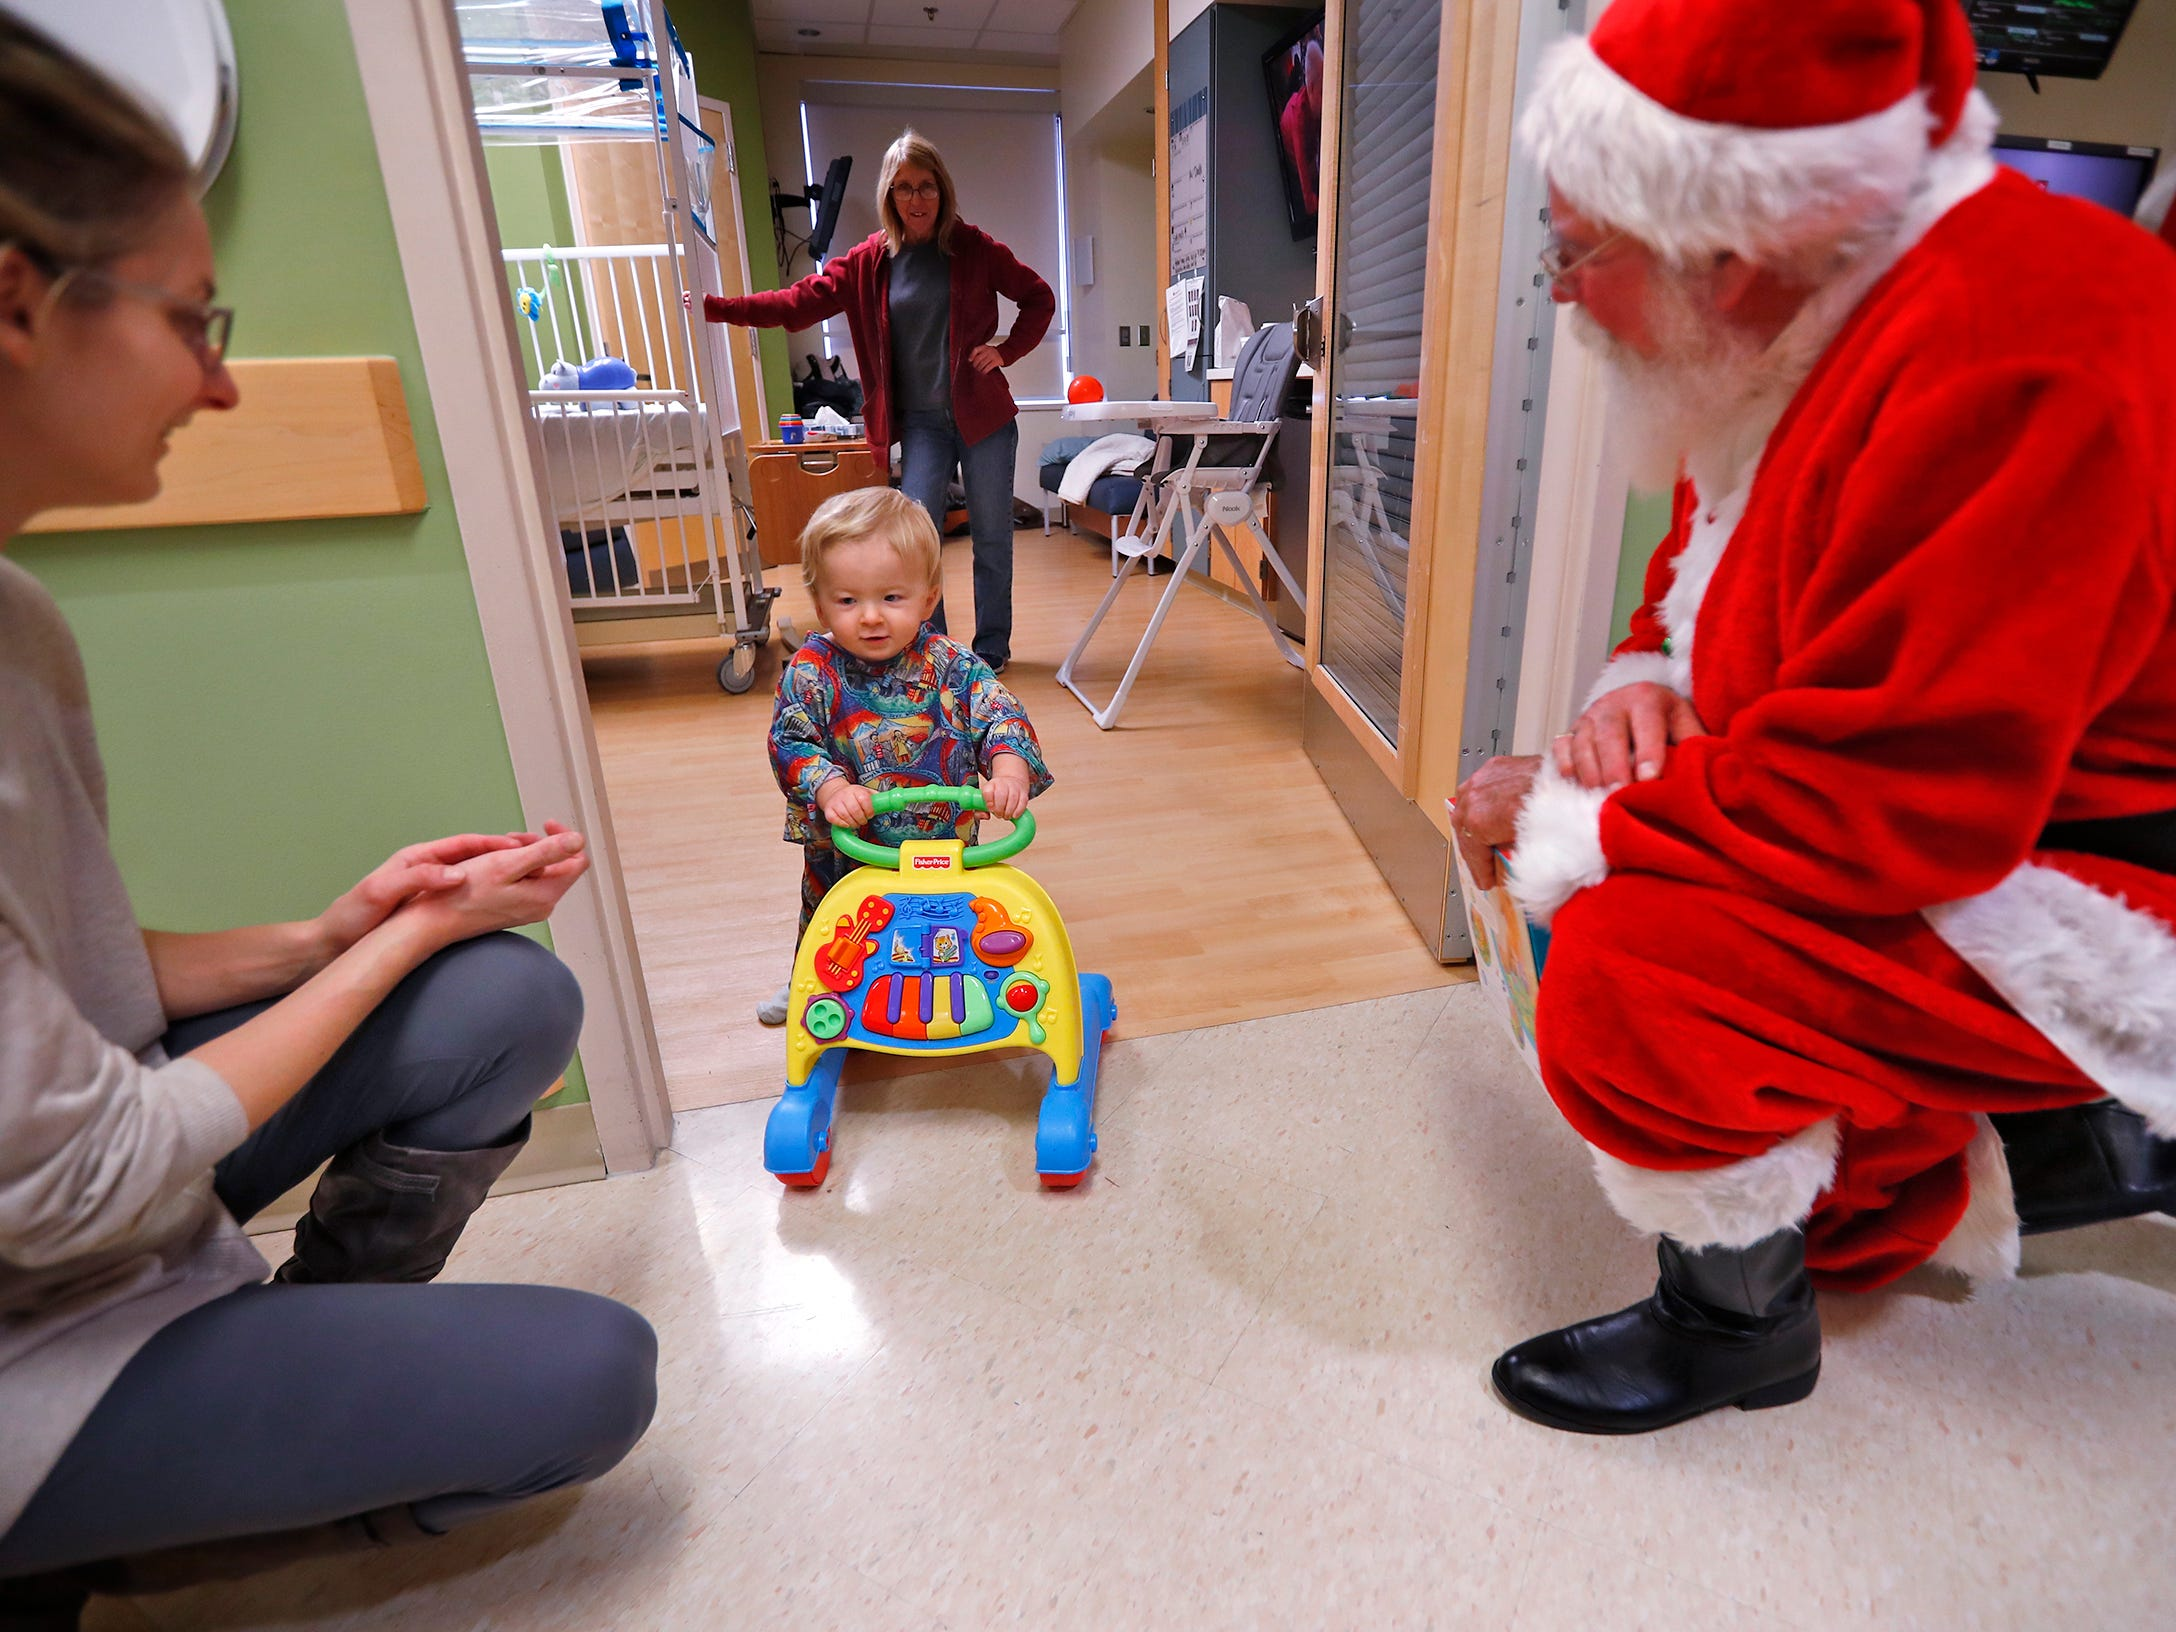 Finnick McCandless, center, walks out to his mother, Celena McCandless, left, and Santa, also know as Bill Armstrong, during Santa's visit with kids at Riley Children's Health, Thursday, Dec. 13, 2018.